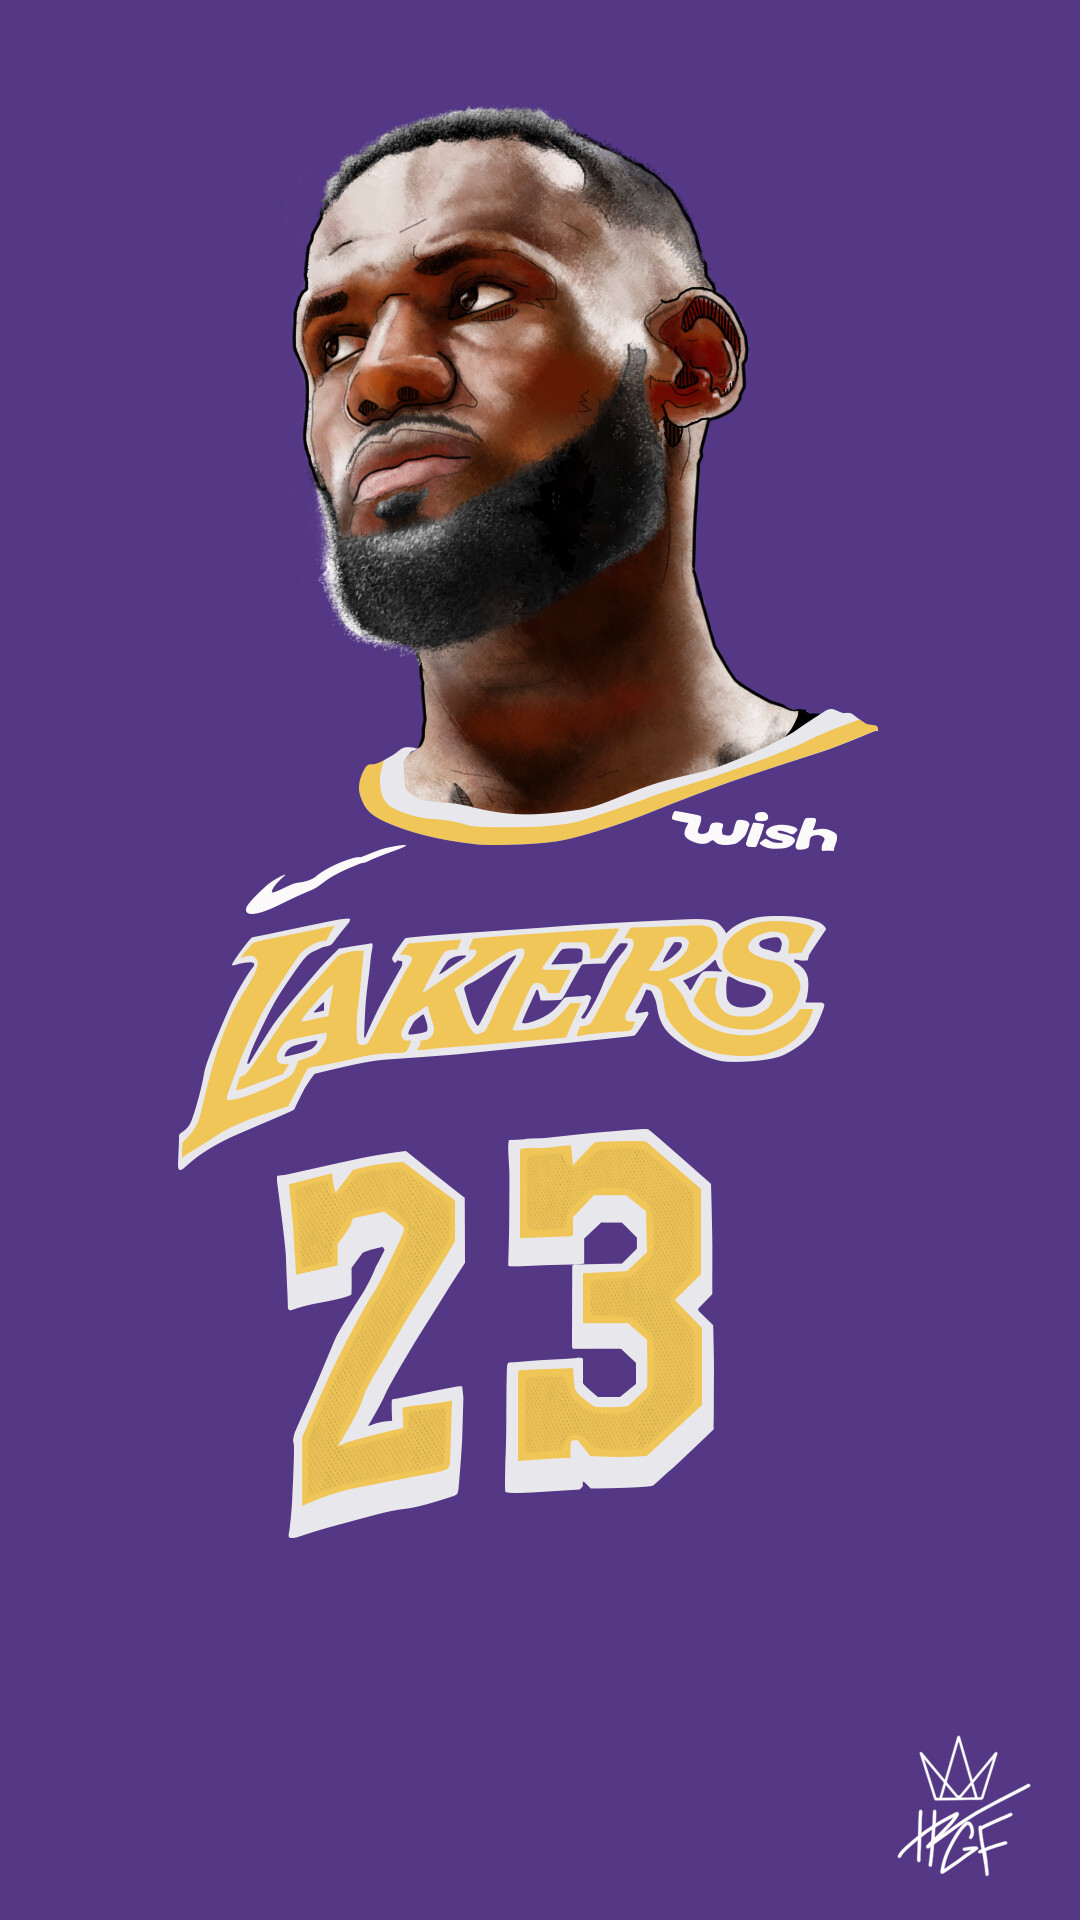 Los Angeles Lakers 2259679 Hd Wallpaper Backgrounds Download